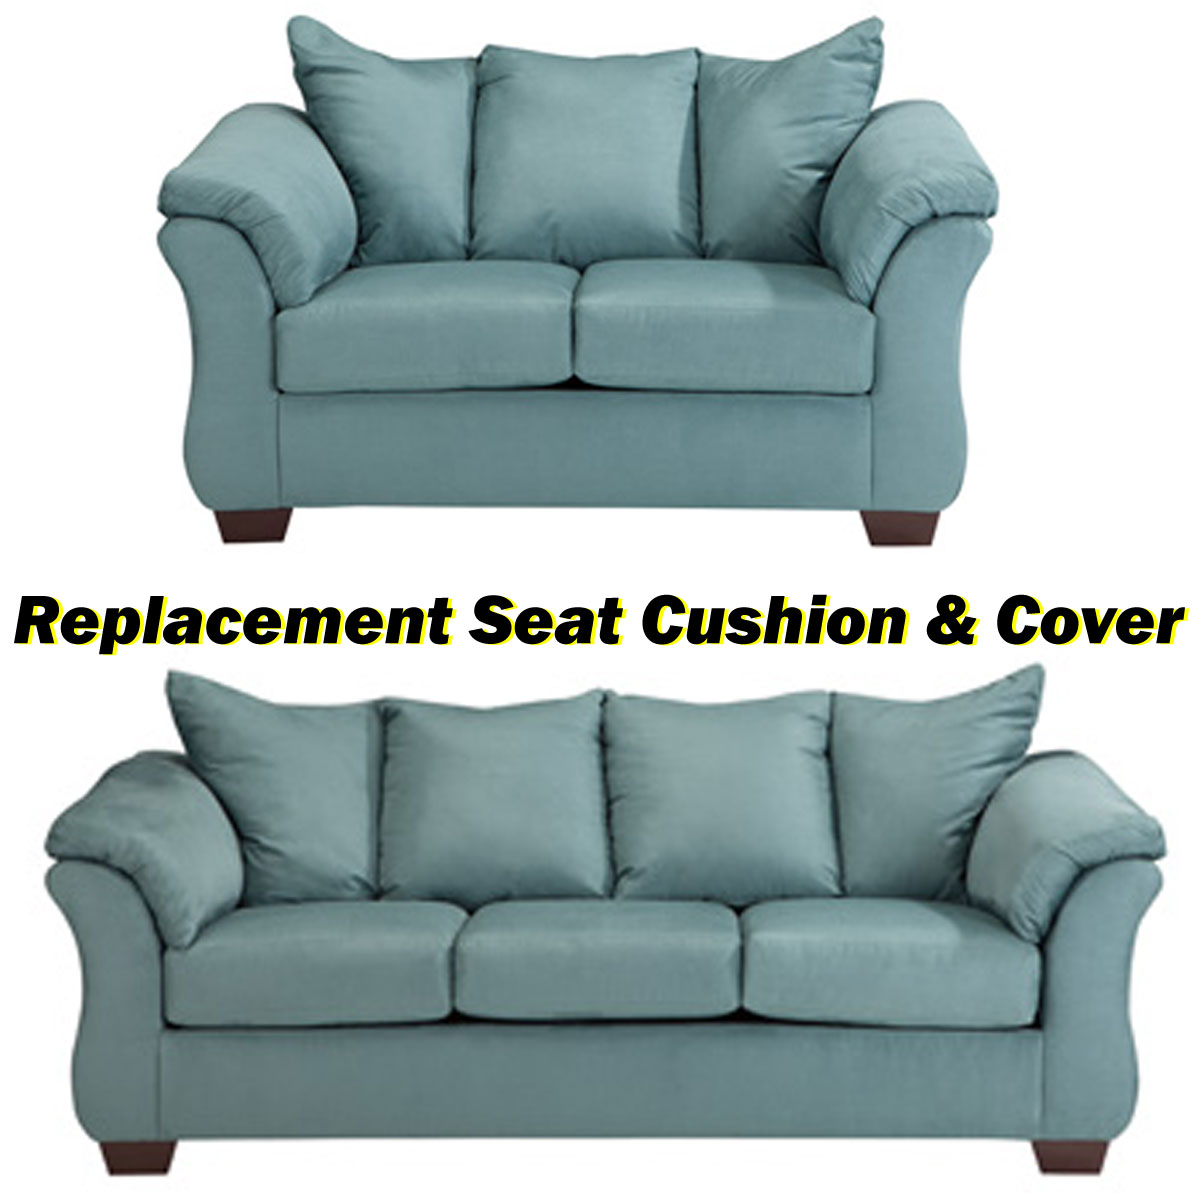 Ashley Darcy Replacement Cushion And Cover 7500638 Or 7500635 Sky